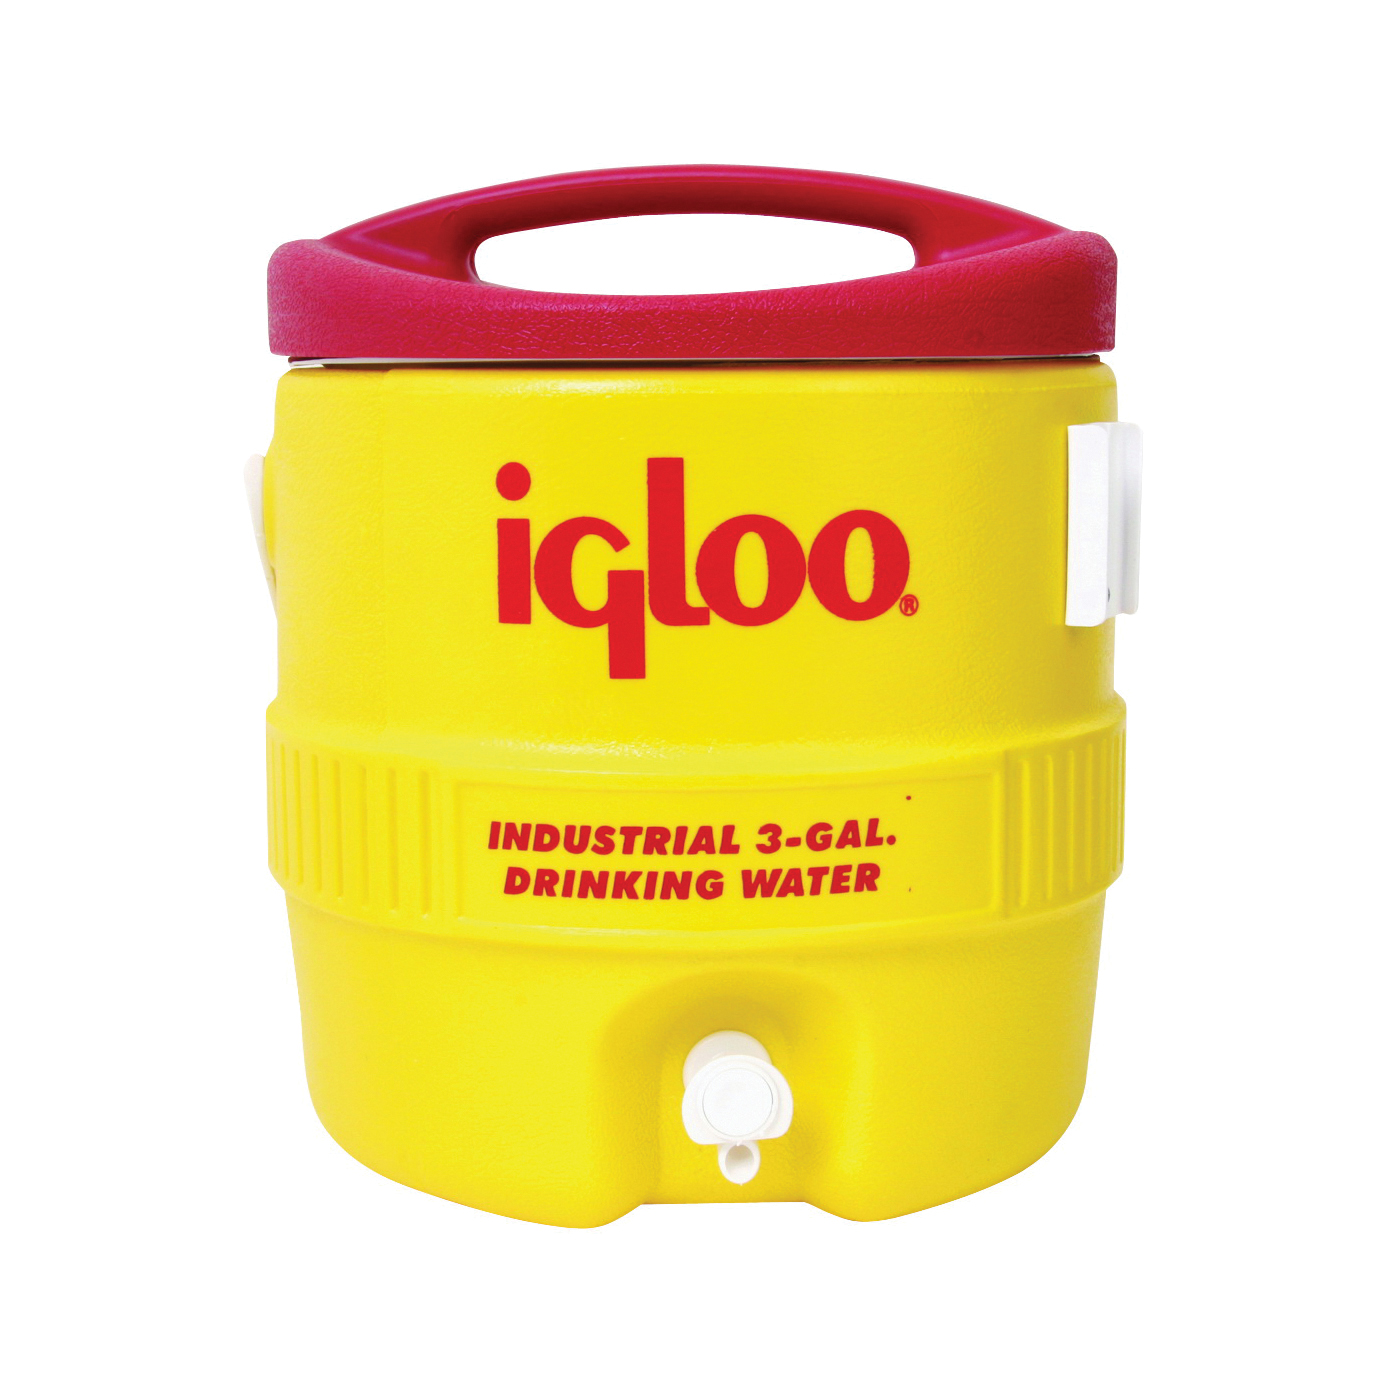 Picture of IGLOO 400 Series 00000431 Water Cooler, 3 gal Tank, Drip Resistant Spigot, Polyethylene, Red/Yellow